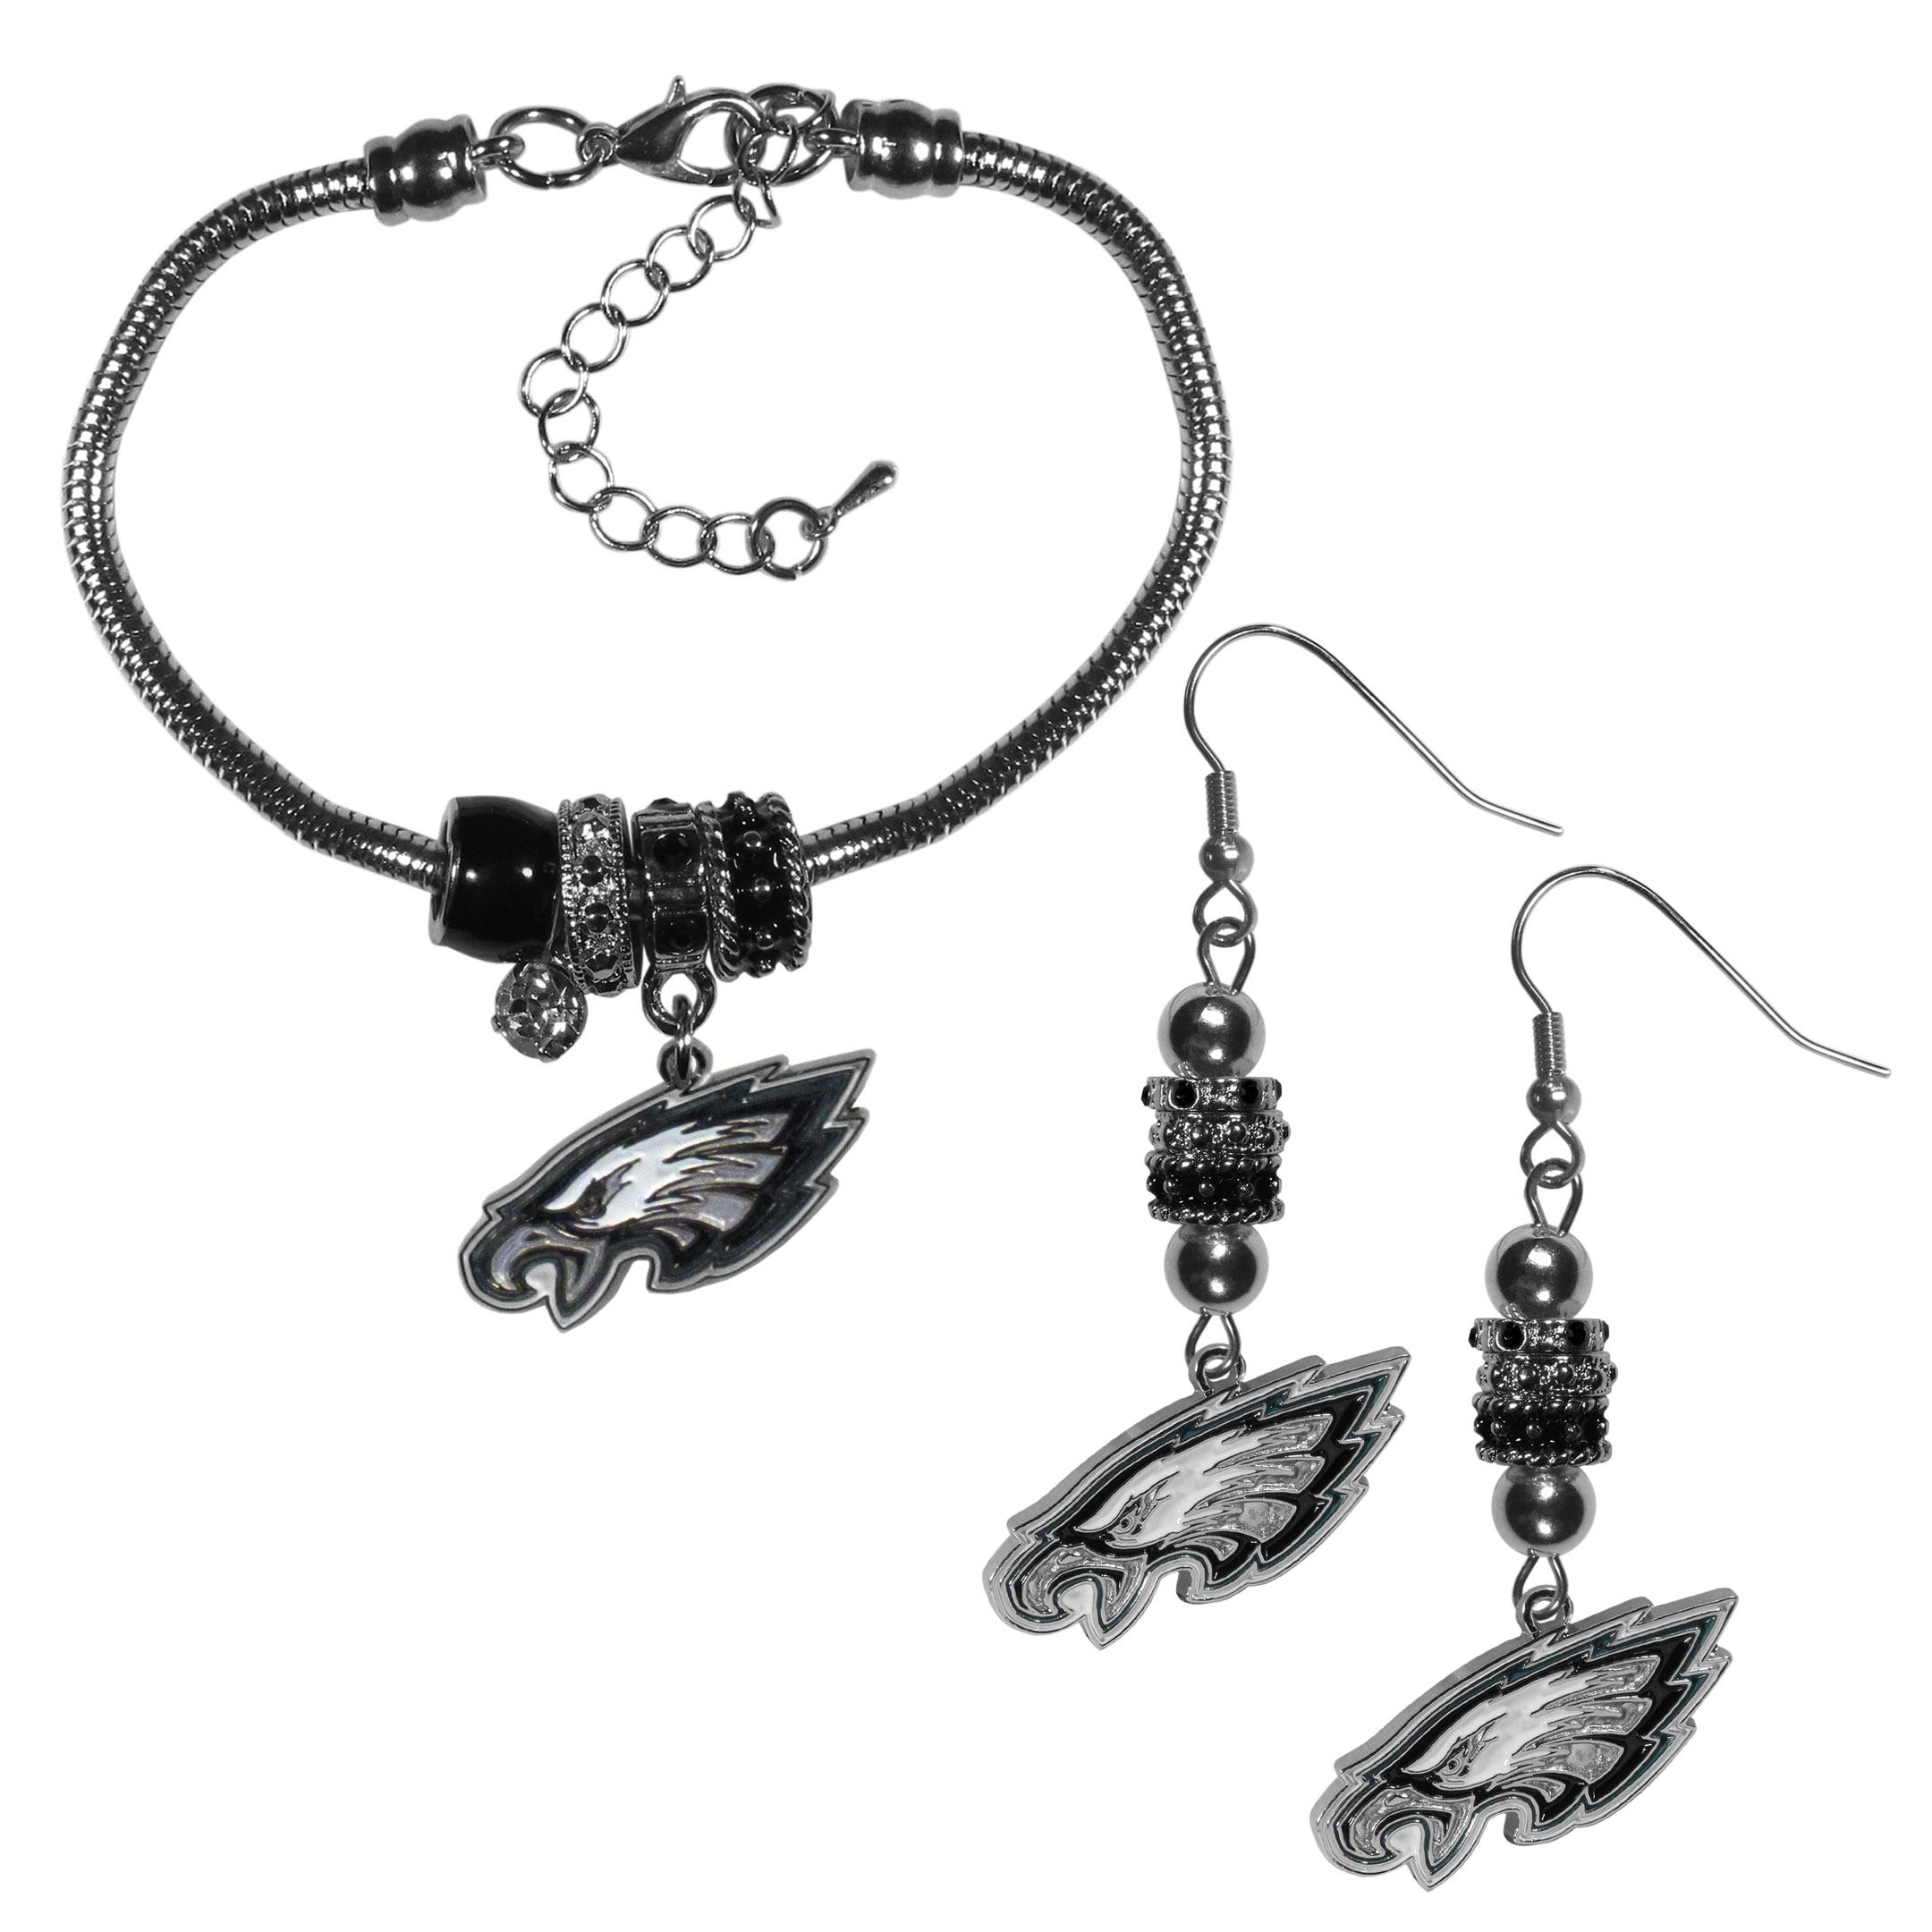 Philadelphia Eagles Euro Bead Earrings and Bracelet Set - We combine the popular Euro bead style with your love of the Philadelphia Eagles with this beautiful jewelry set that includes earrings and a matching bracelet. The stylish earrings feature hypoallergenic, nickel free fishhook posts and 3 team colored Euro beads and a metal team charm. The matching snake chain bracelet is 7.5 inches long with a 2 inch extender and 4 Euro beads with a rhinestone charm and team charm.